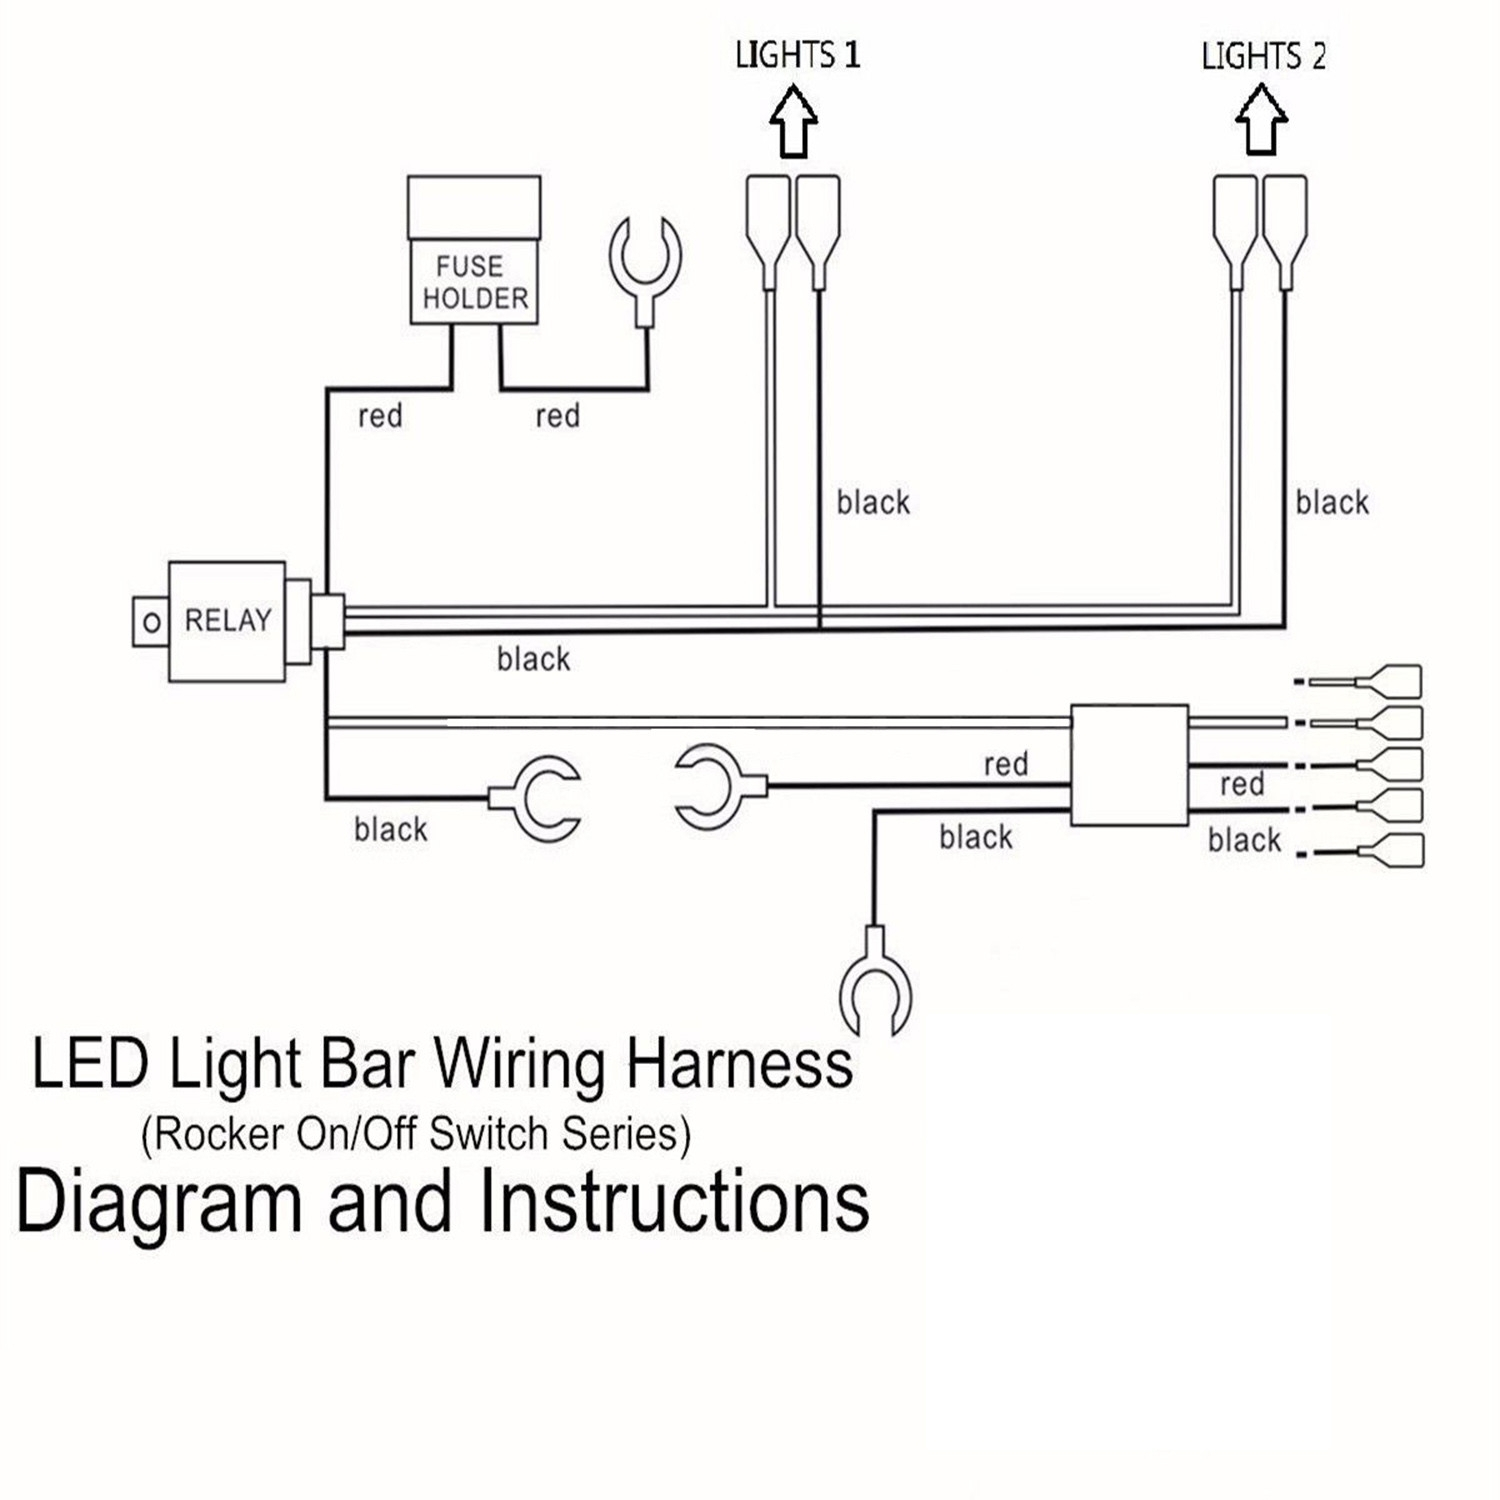 DIAGRAM] Whelen Edge 9000 Light Bar Wiring Diagram FULL ... on whelen emergency-lights, whelen patriot lightbar wiring, whelen pa 300 siren, whelen siren 295hfsa1, whelen flasher wiring-diagram, whelen 9m light bar wire diagram, whelen edge 9004 wiring-diagram, whelen liberty light bar, whelen siren wiring, whelen edge 9000 manual, whelen edge lightbar, strobe light wiring diagram, whelen inner edge wiring-diagram, whelen light bar replacement lenses, whelen liberty wiring-diagram, whelen mini led light bar, whelen edge 9000 wiring, whelen wiring schematics, whelen legacy light bar, simple chopper wiring diagram,